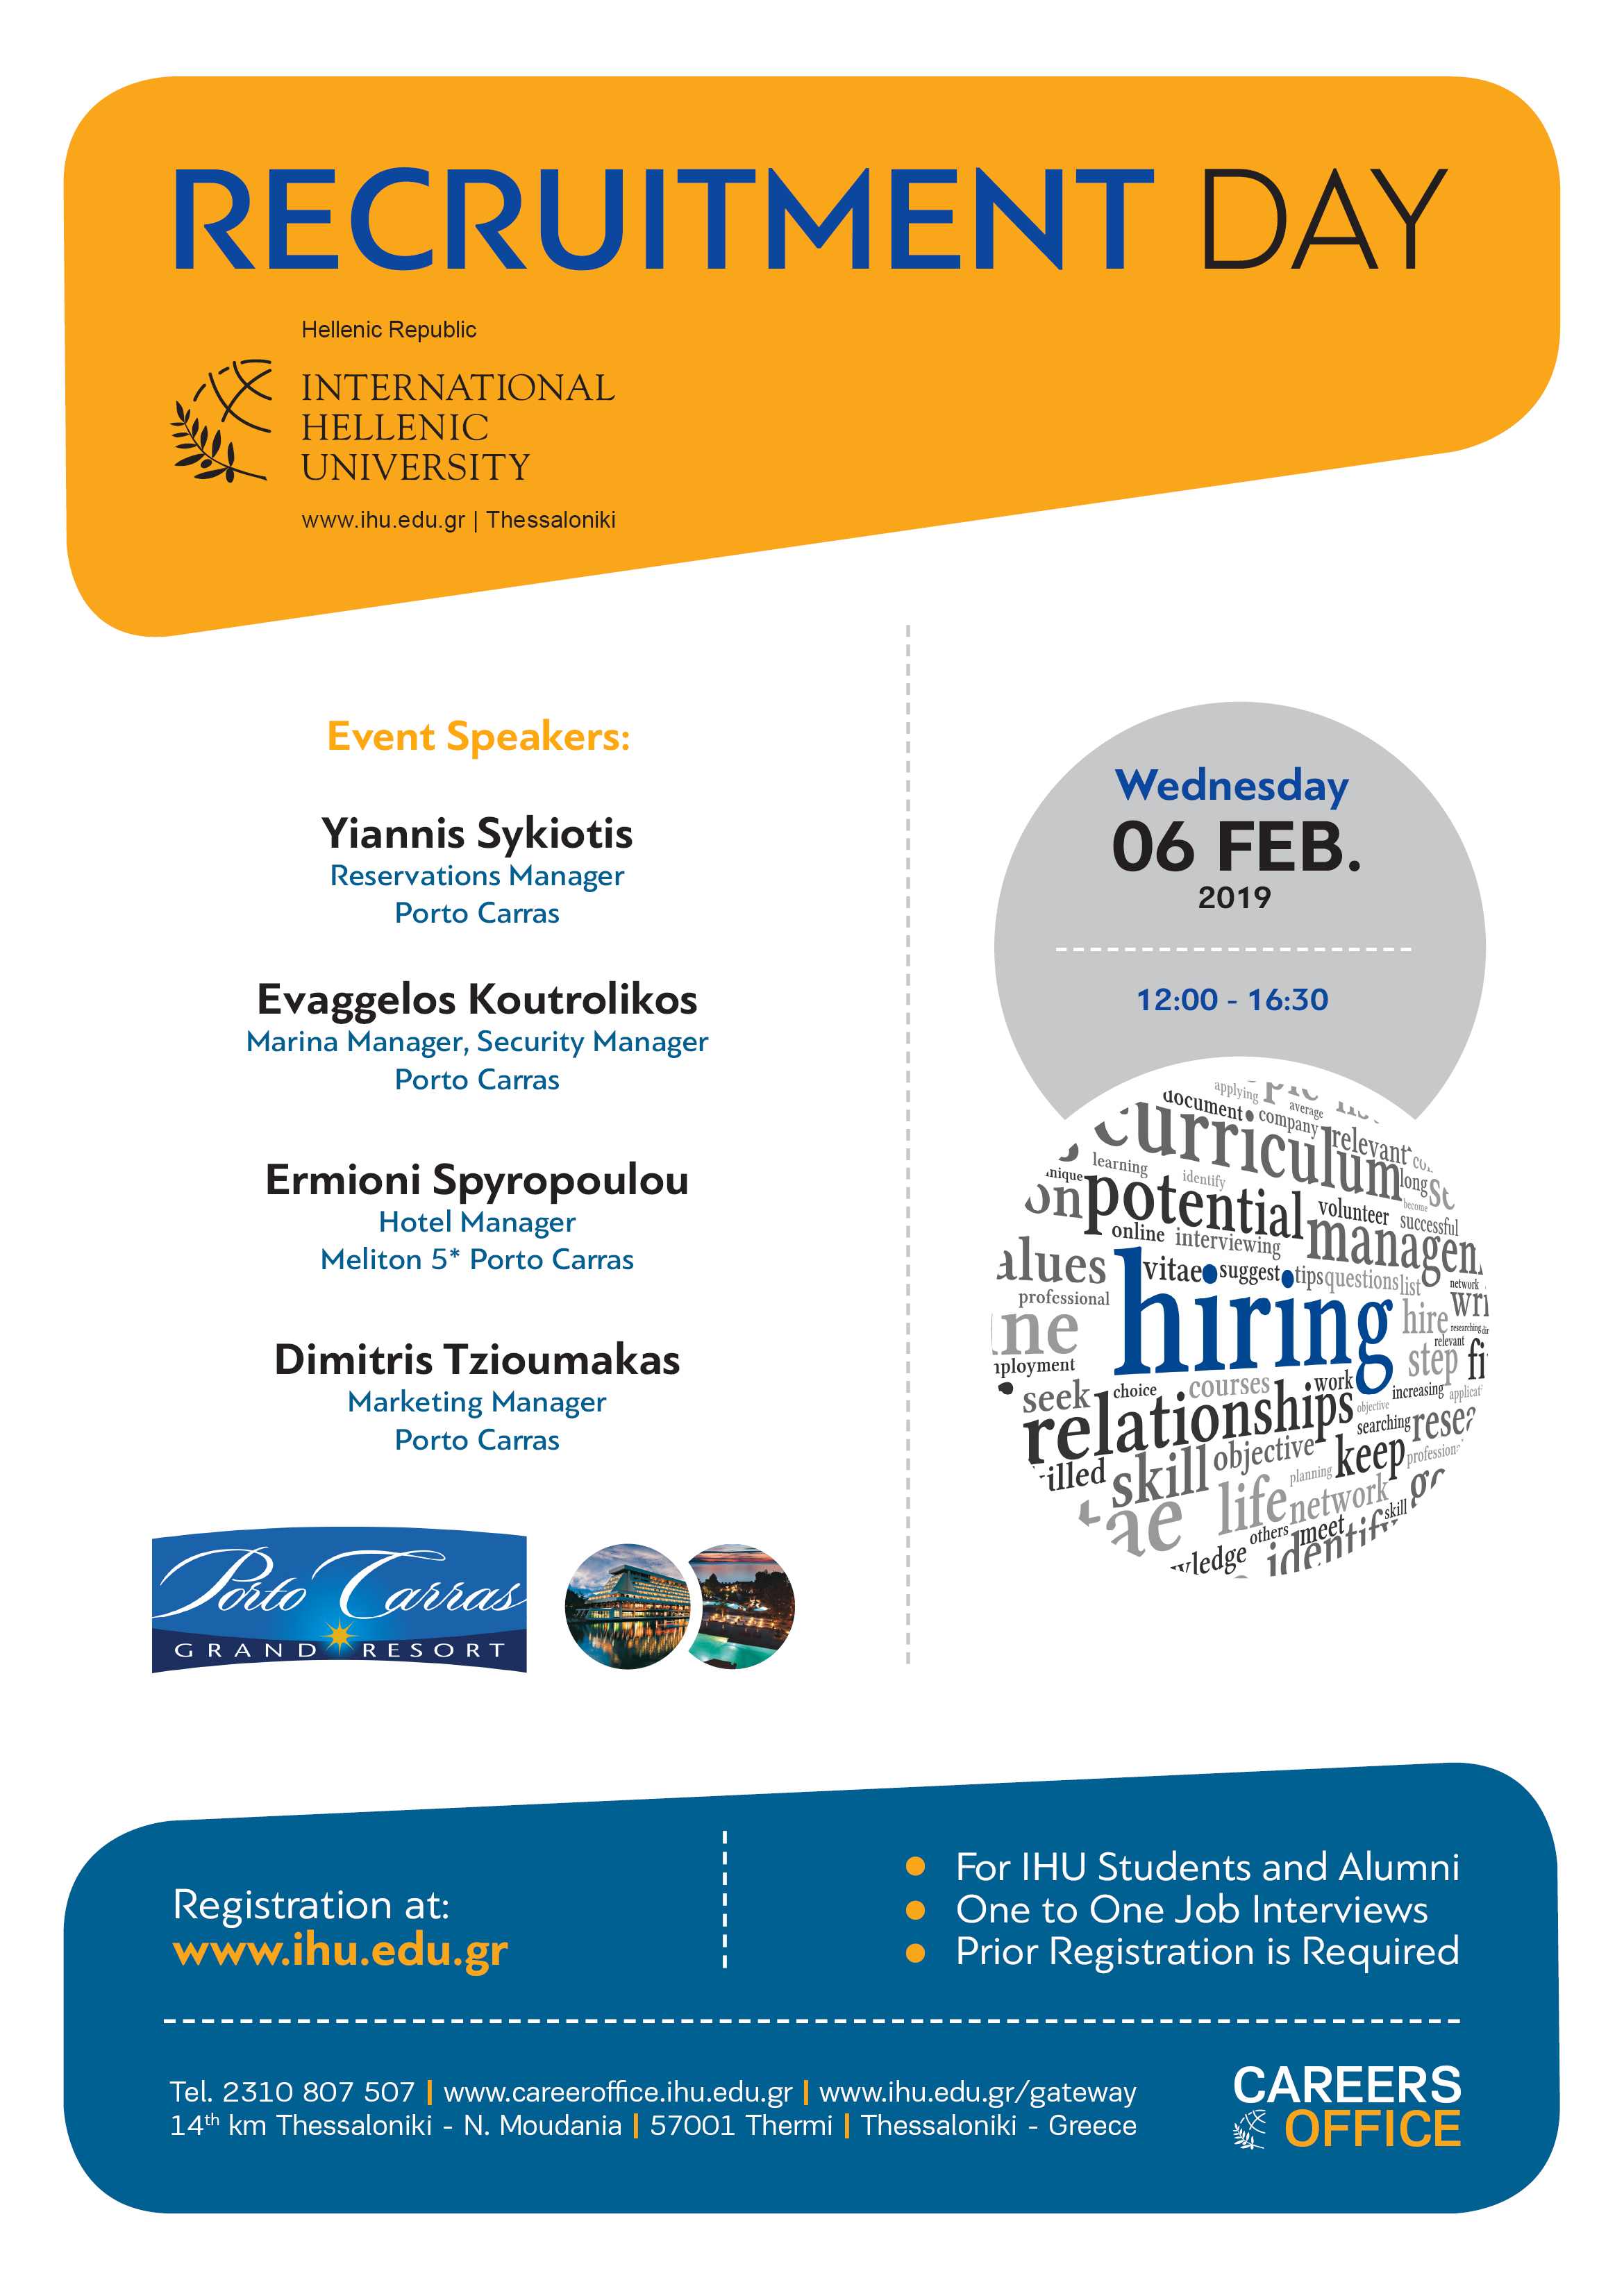 On Campus Recruitment Day | International Hellenic